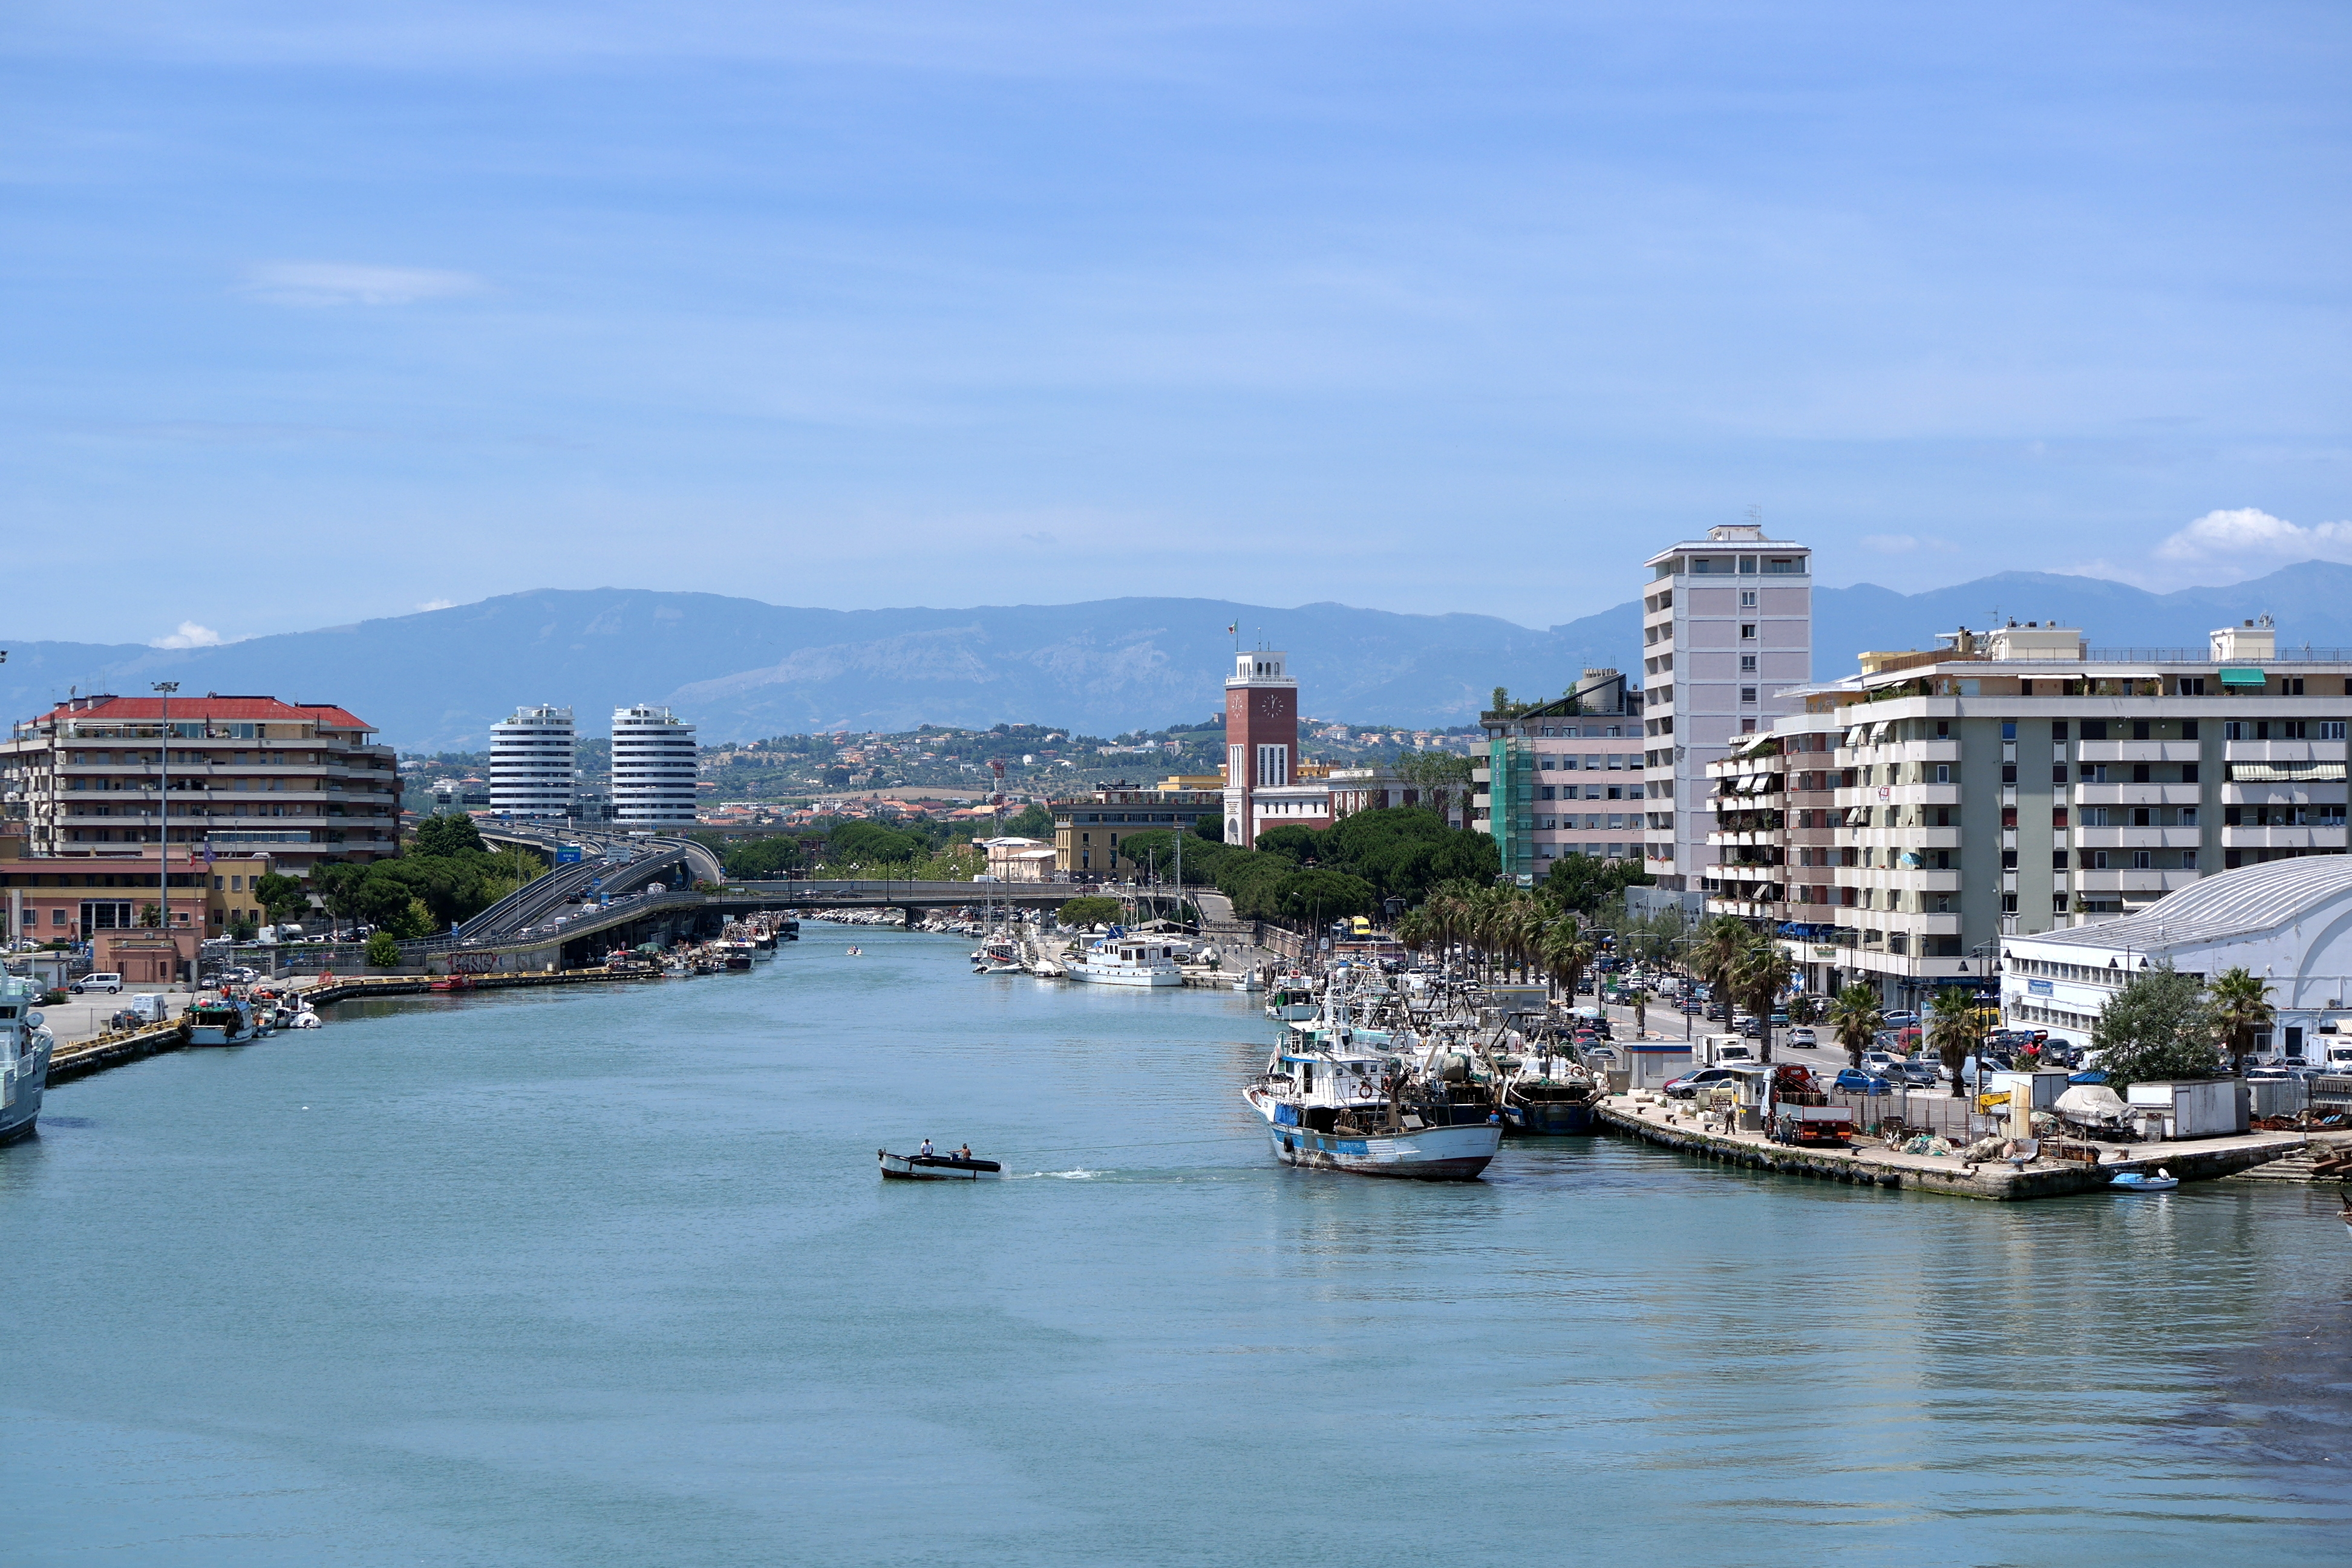 Pescara (province) – Travel guide at Wikivoyage